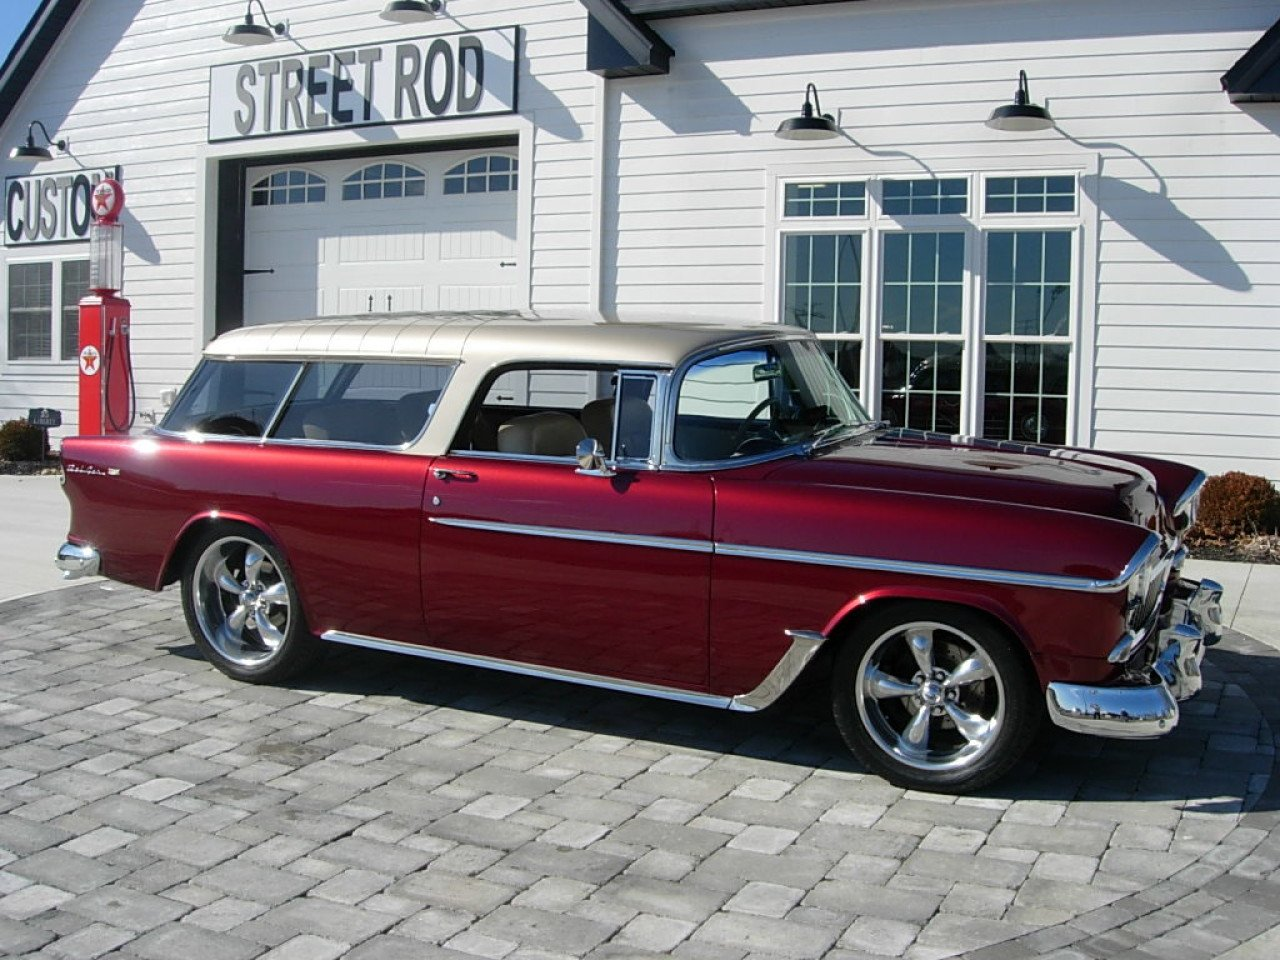 Auctions In Ohio >> 1955 Chevrolet Nomad for sale near Newark, Ohio 43055 - Classics on Autotrader